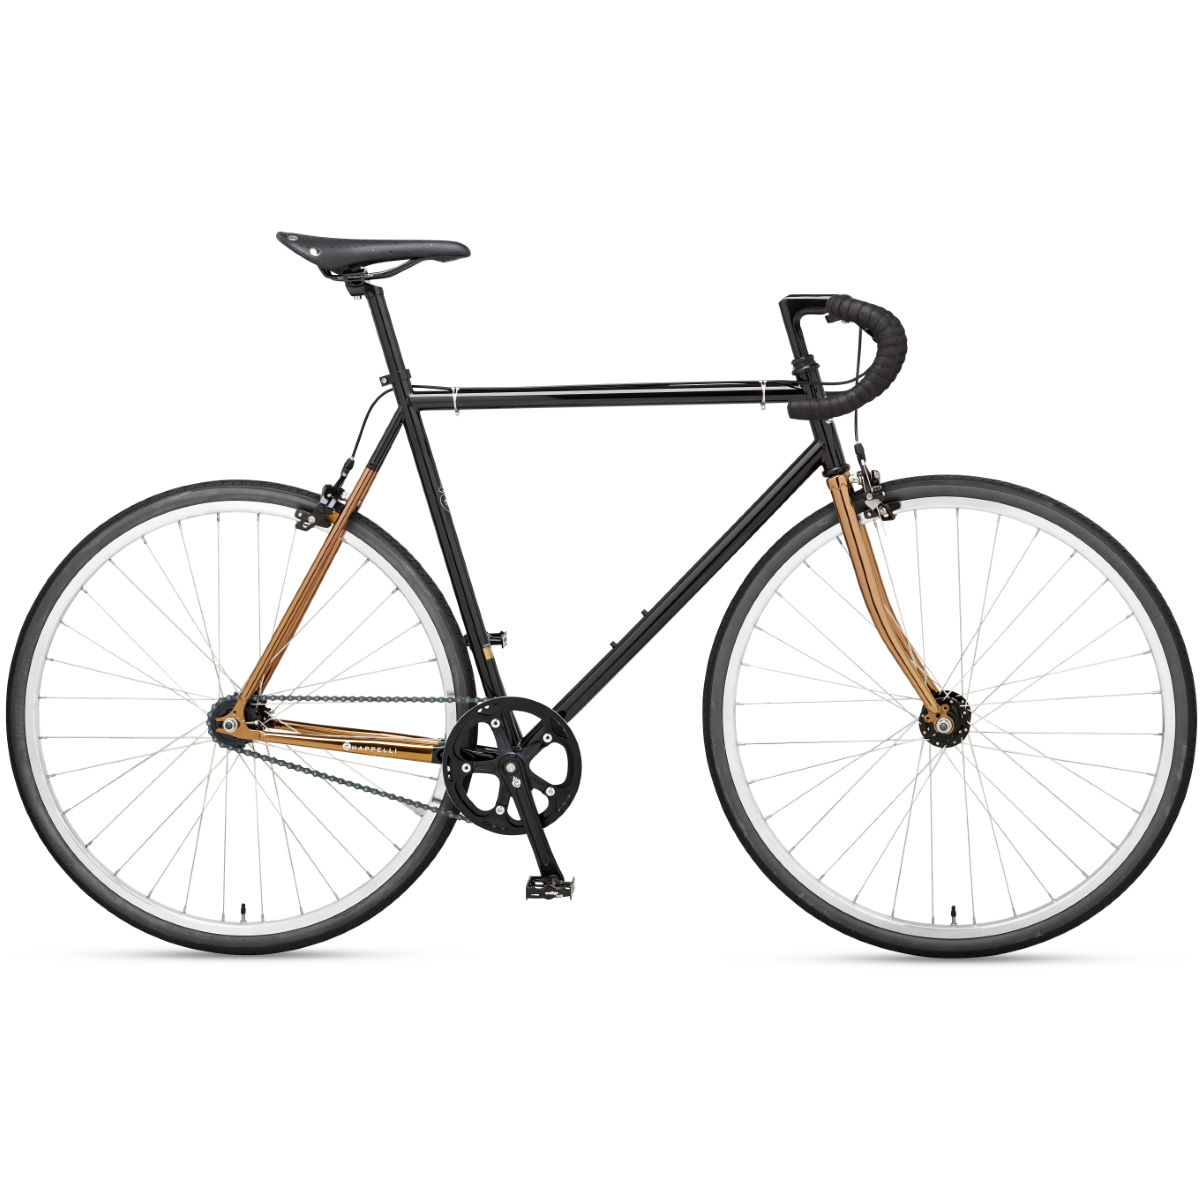 Chappelli vintage single speed limited edition bike 2017 single speed bikes black and copper 30